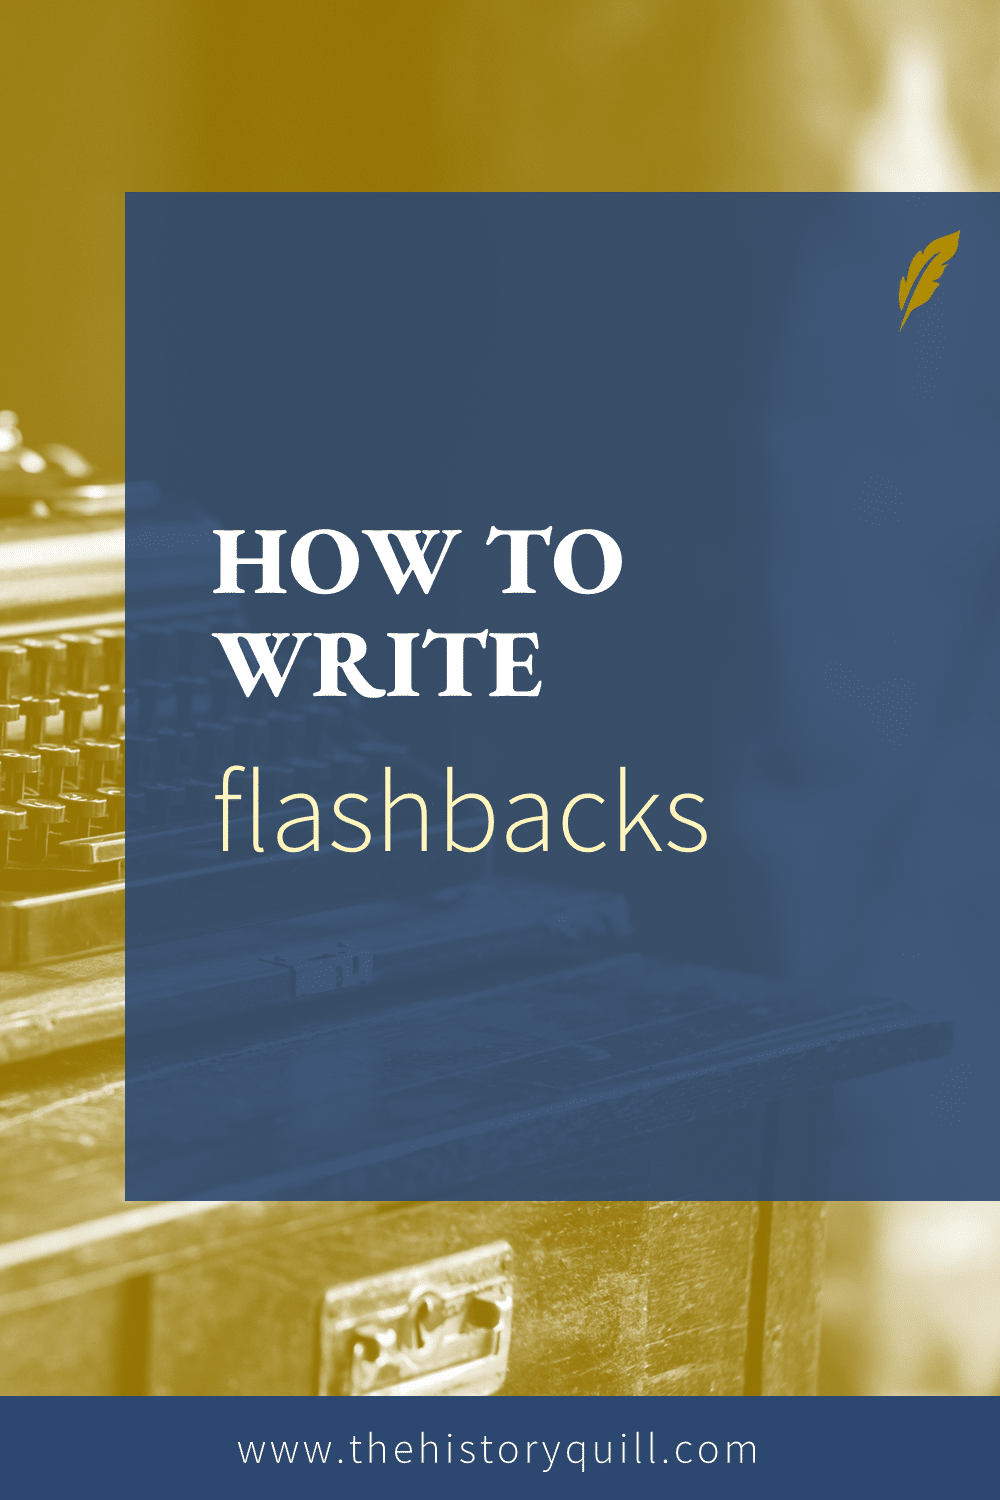 From The History Quill blog, how to write flashbacks successfully in your historical fiction writing.